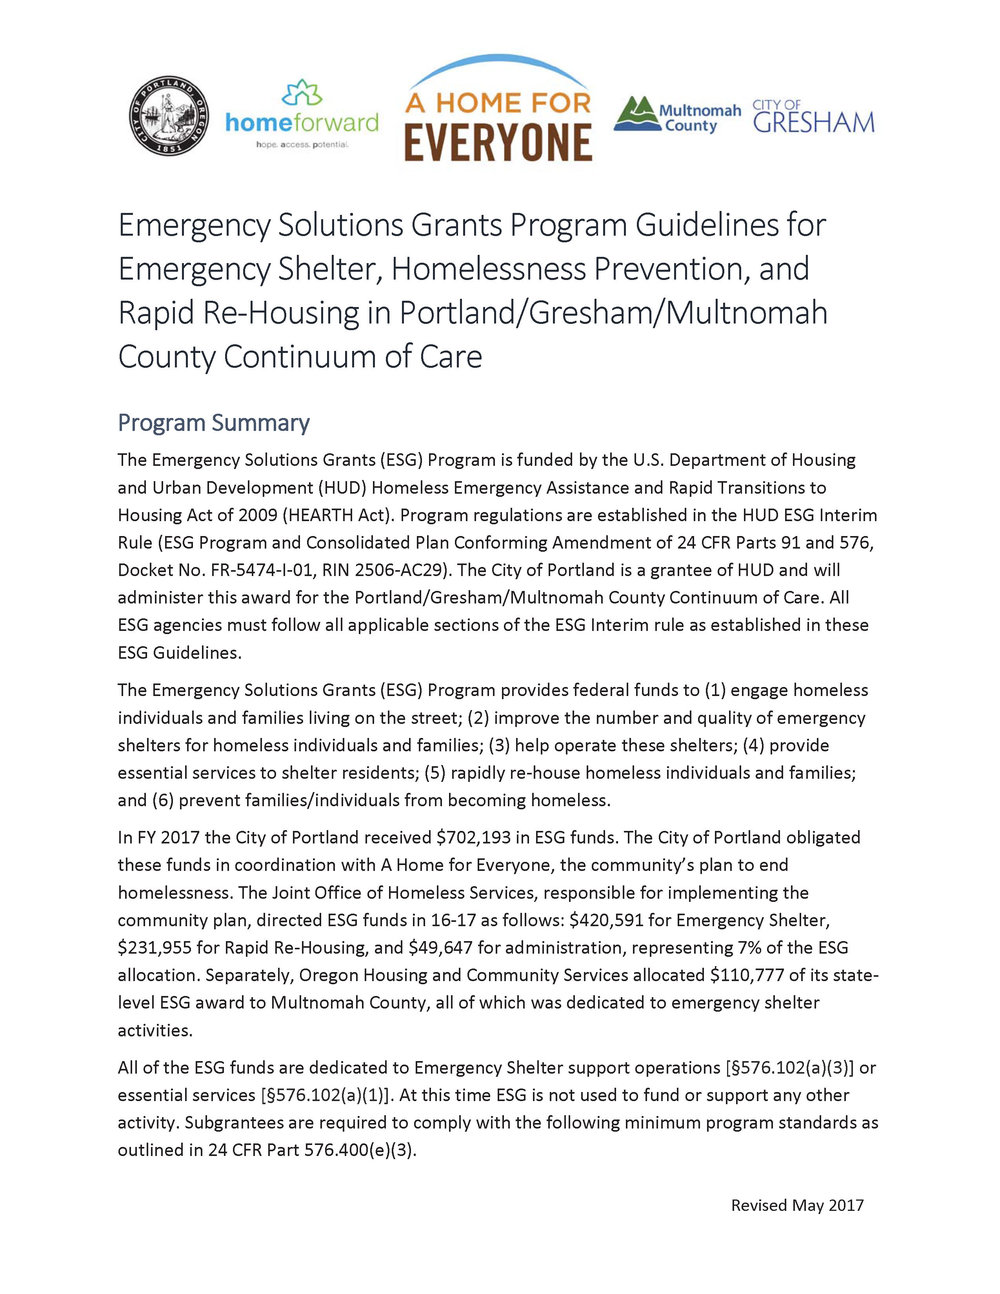 Read: ESG Guidelines for Portland/Gresham/Multnomah County